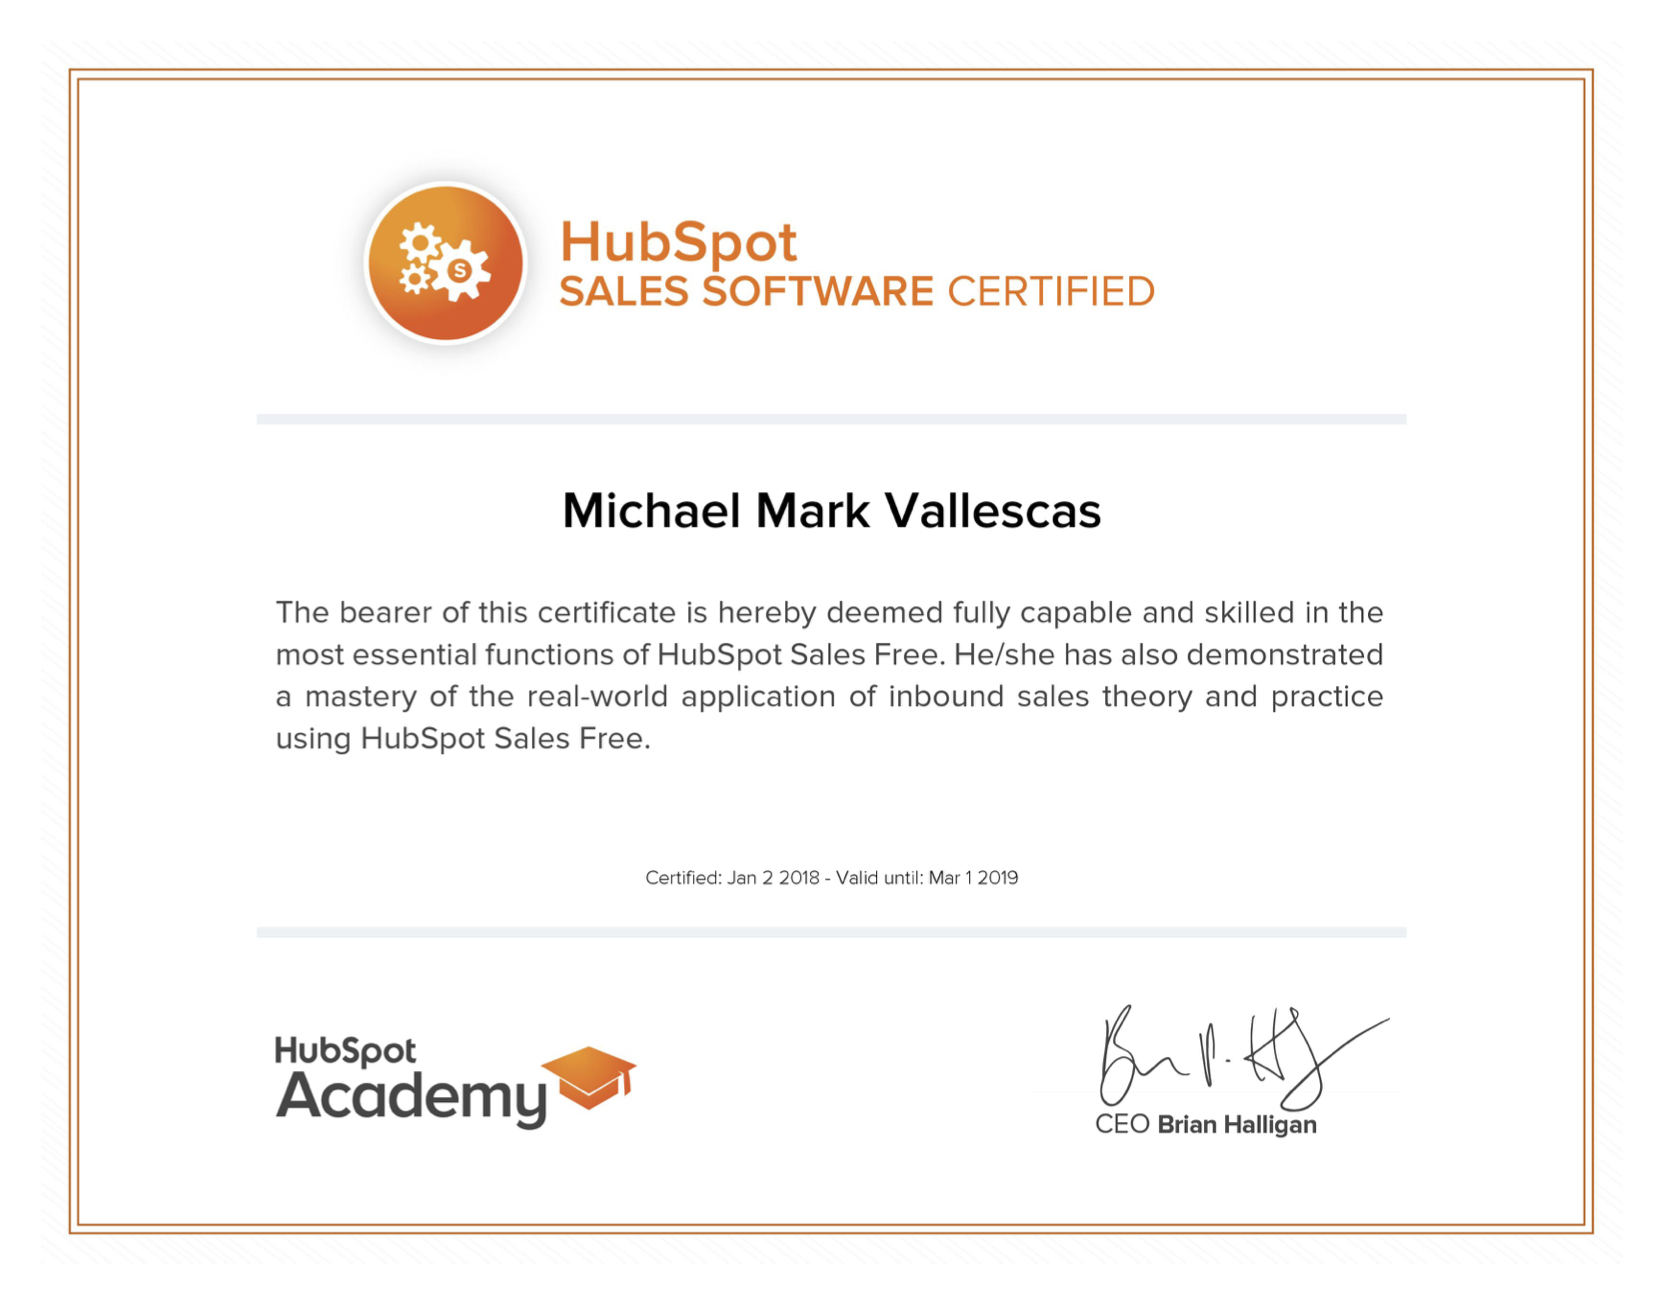 Solved: HubSpot Community - Download printable certificate for Sales ...